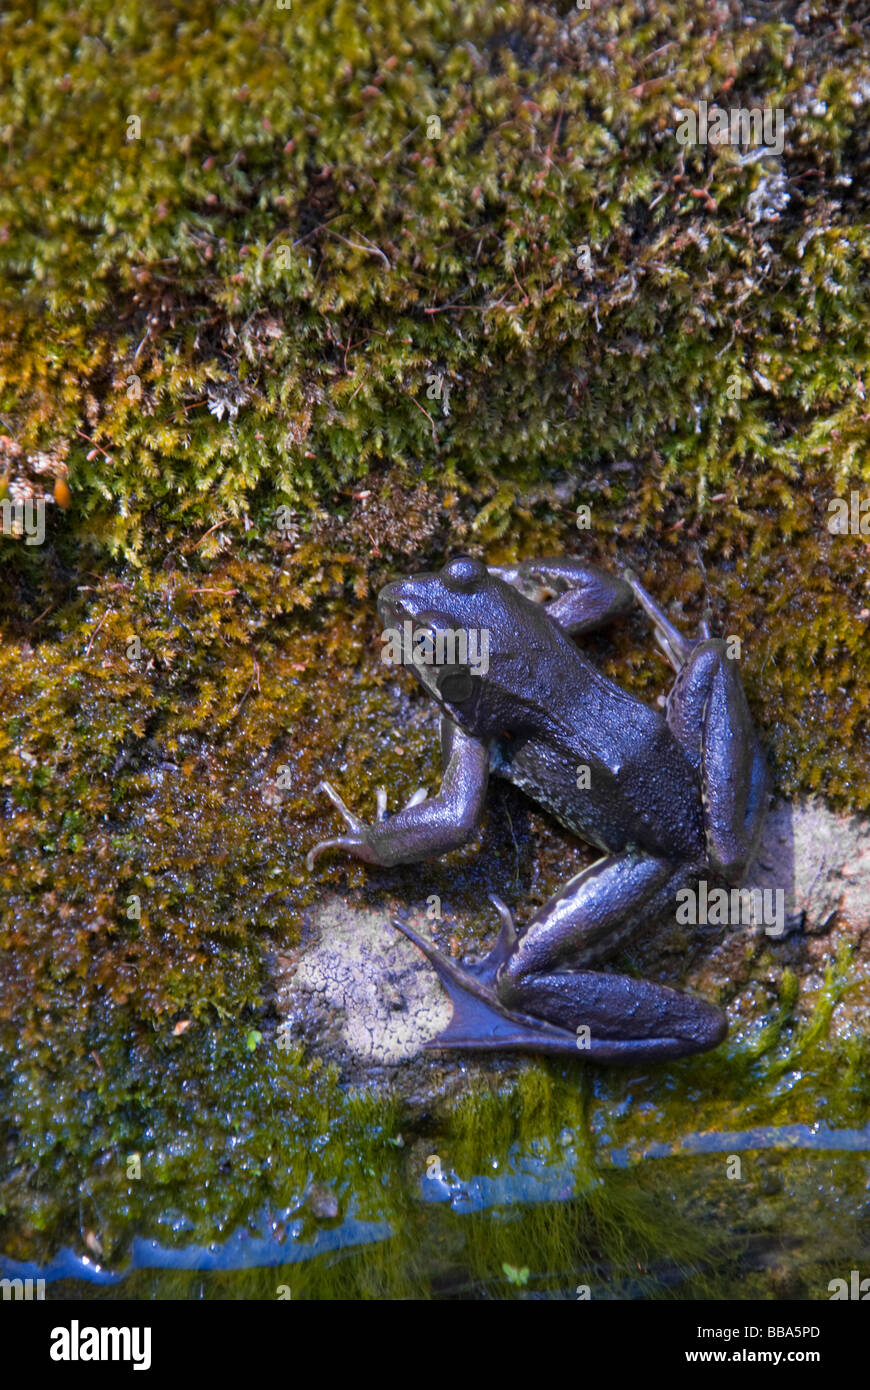 Immature Common Frog (Rana temporaria, c2yr old) by Garden Pond - Stock Image